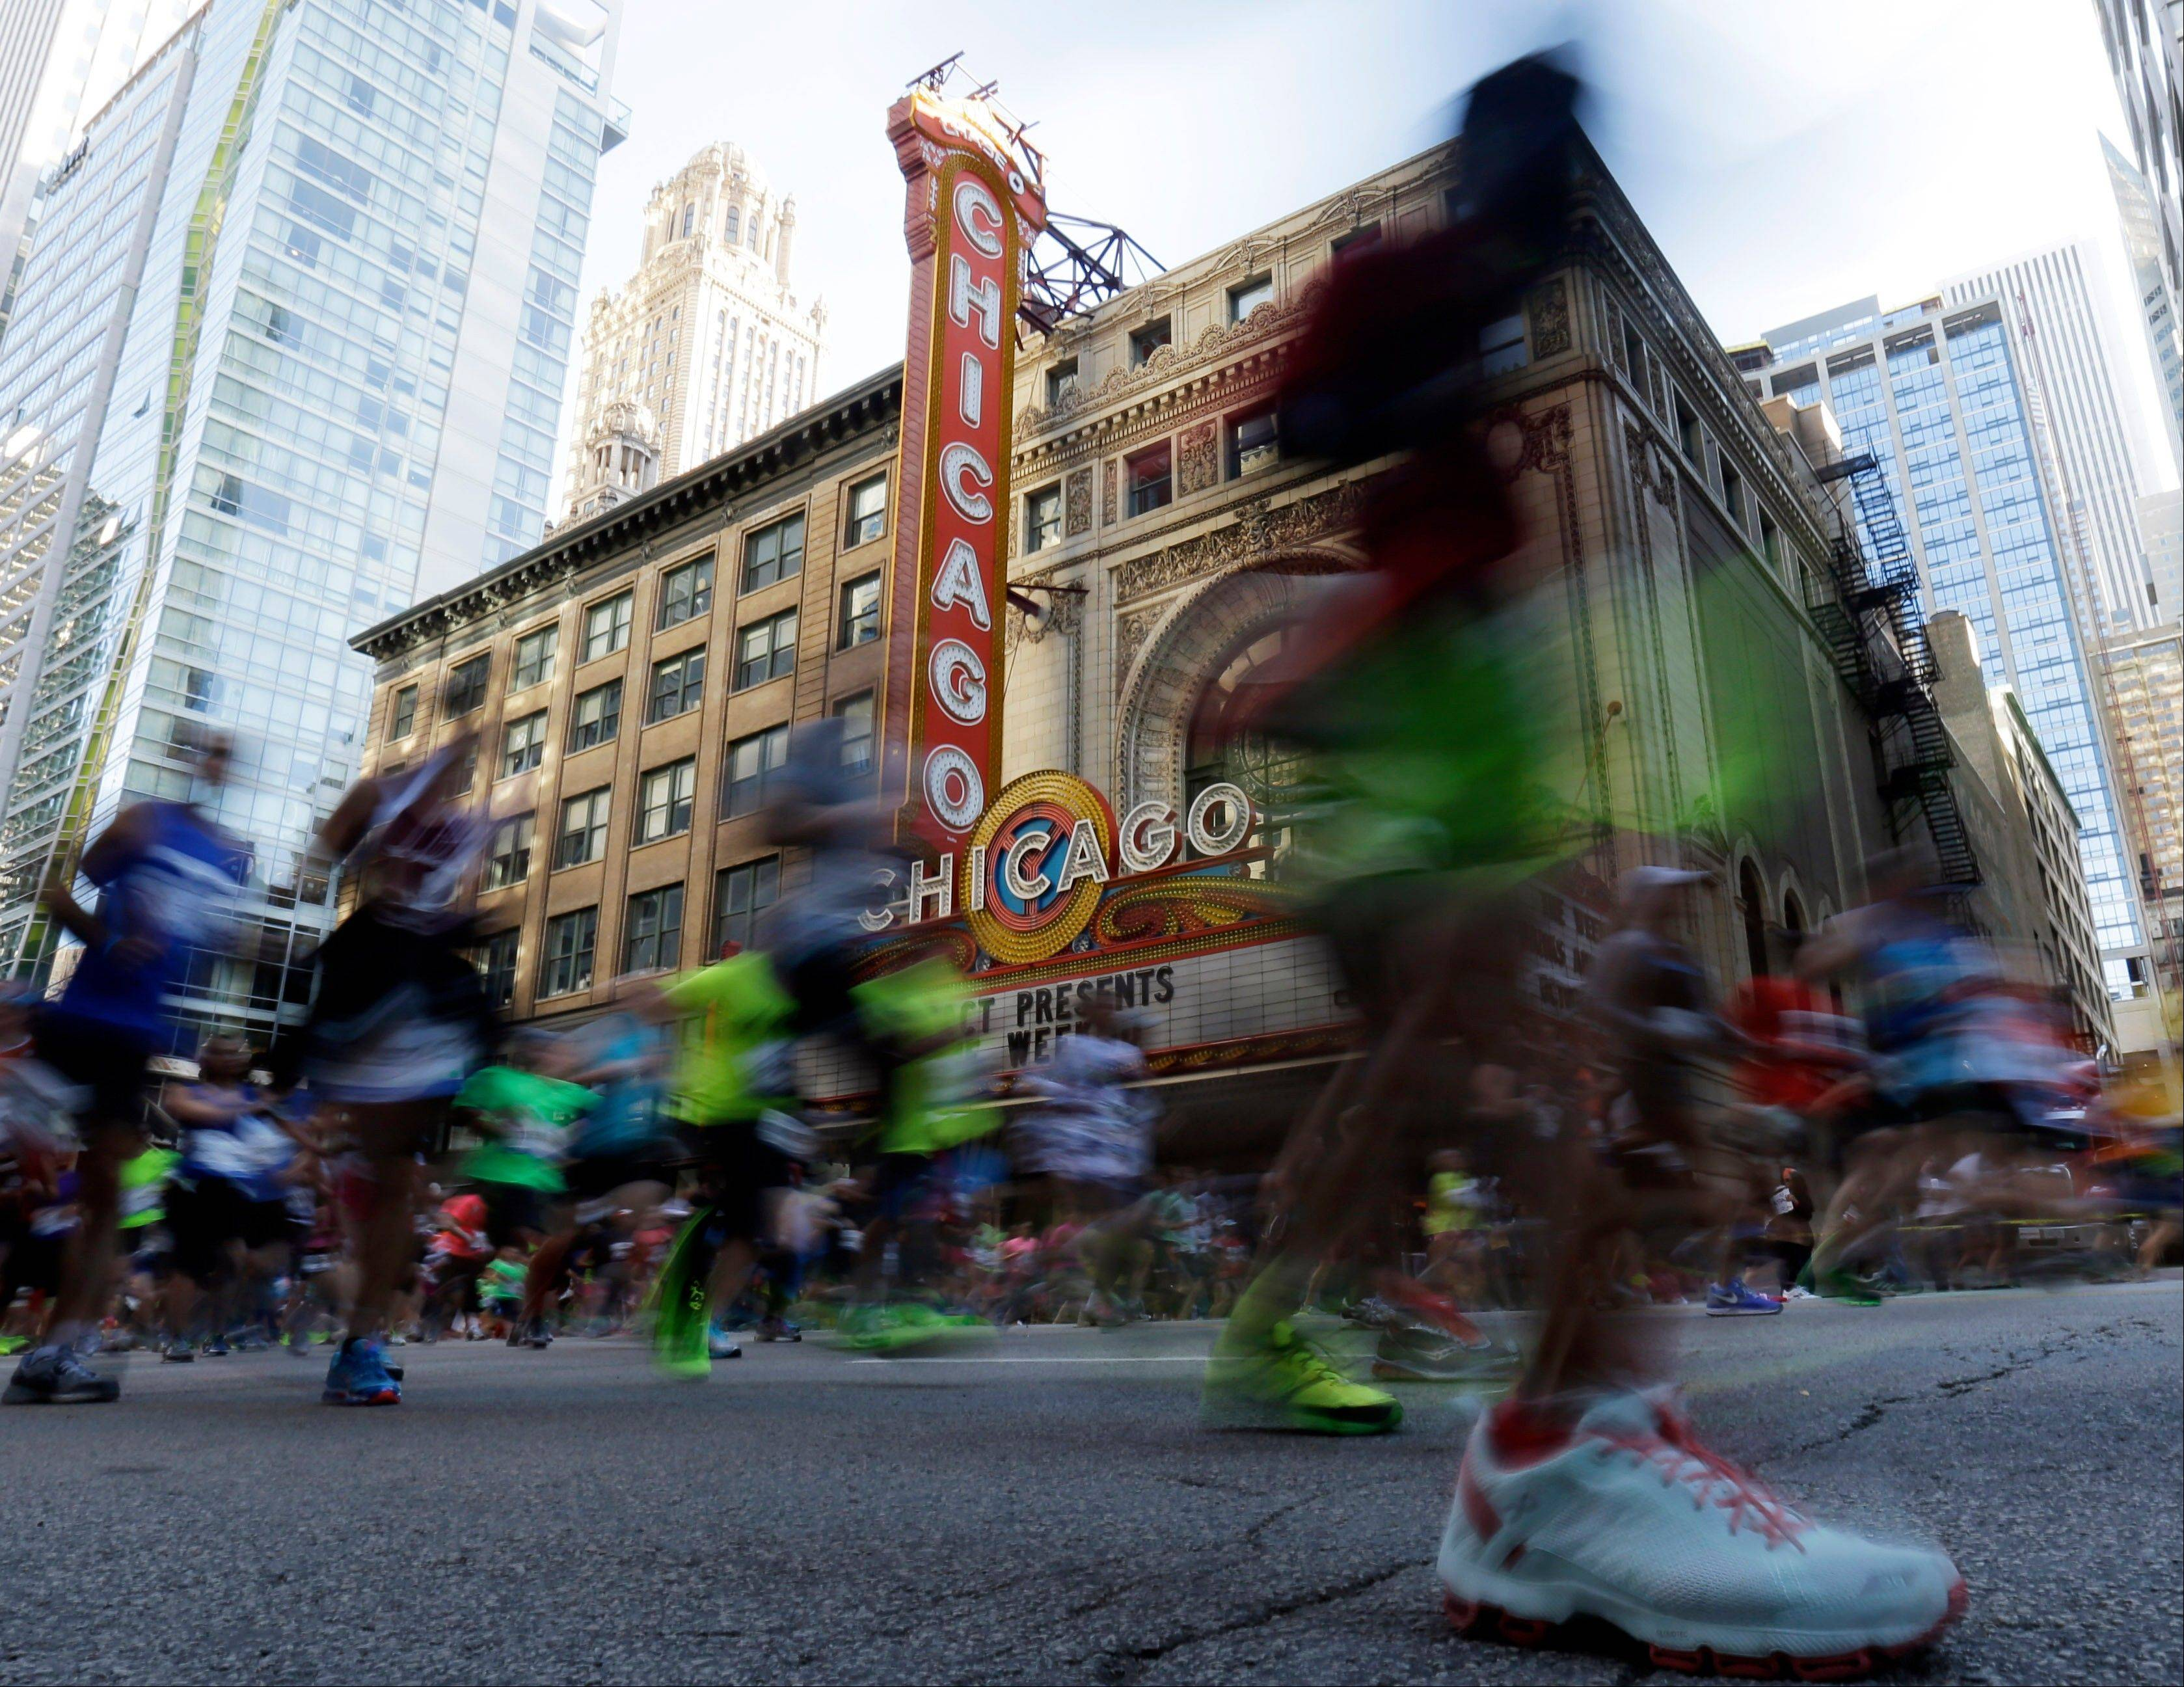 Runners make their way along the 26.2 mile route in the Chicago Marathon Sunday in Chicago. Organizers say 40,230 athletes took part in the annual marathon.